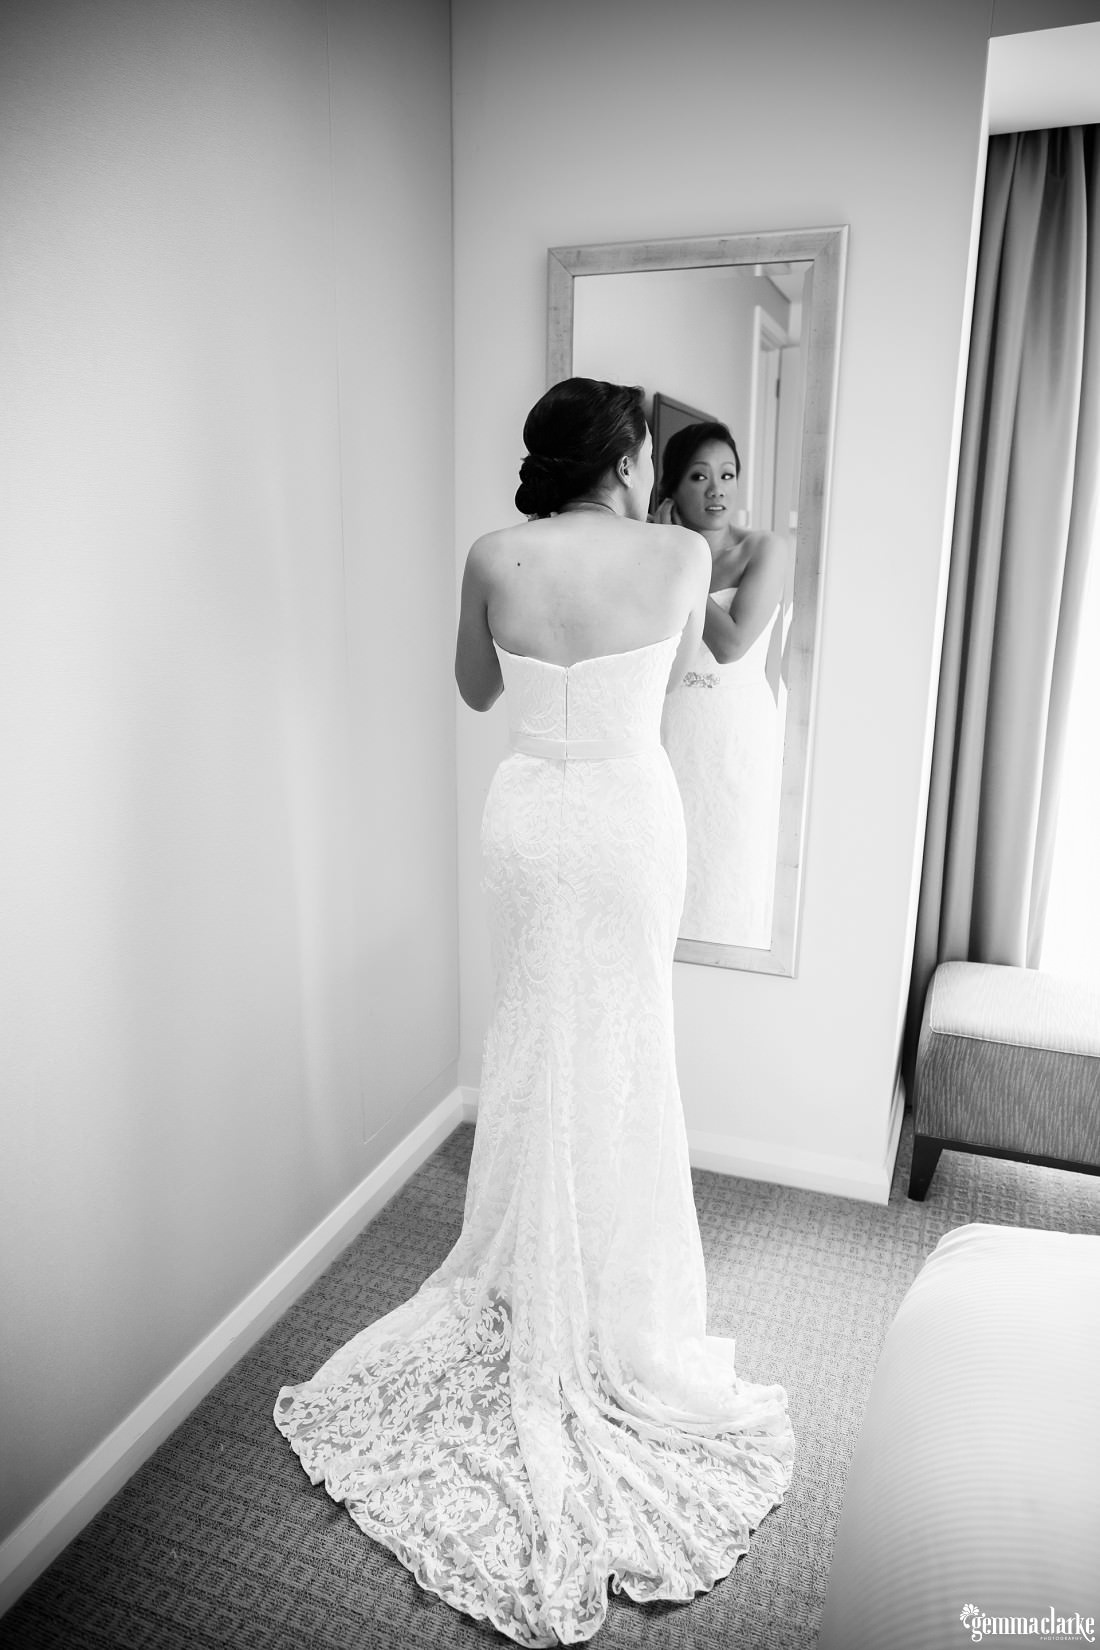 A bride in a white bridal gown puts on her earrings in front of a mirror